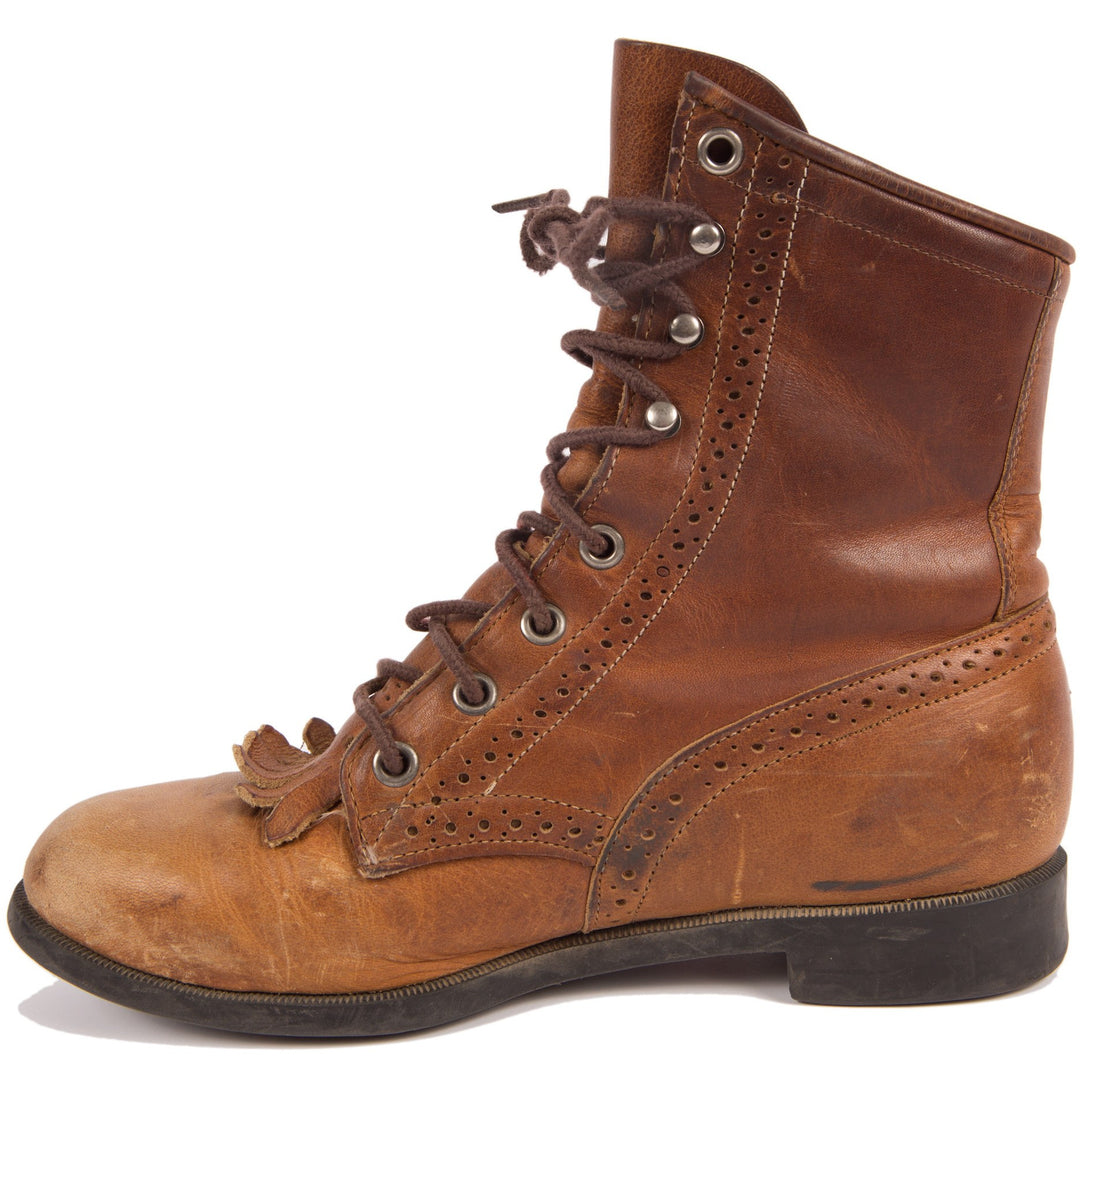 Vintage 70's Brown Justin Lace up Boots, 7 1/2 - Vintage: Women's: Shoes - Iron and Resin